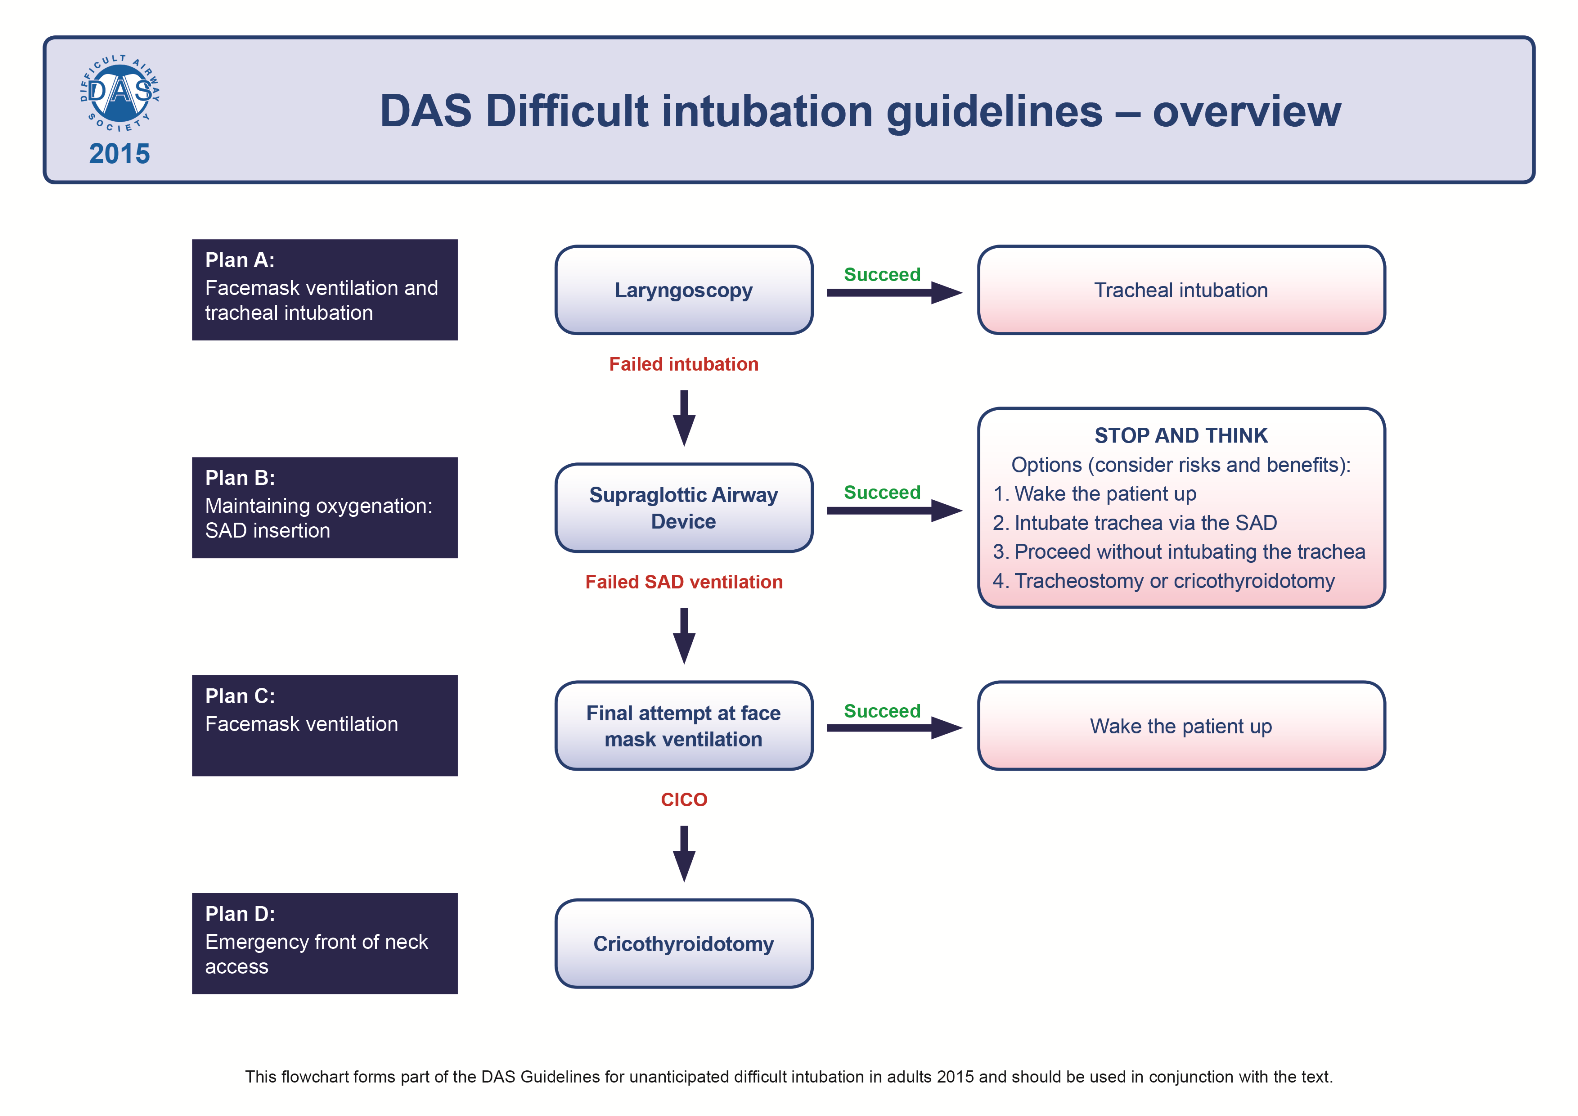 DAS guidelines for management of unanticipated difficult